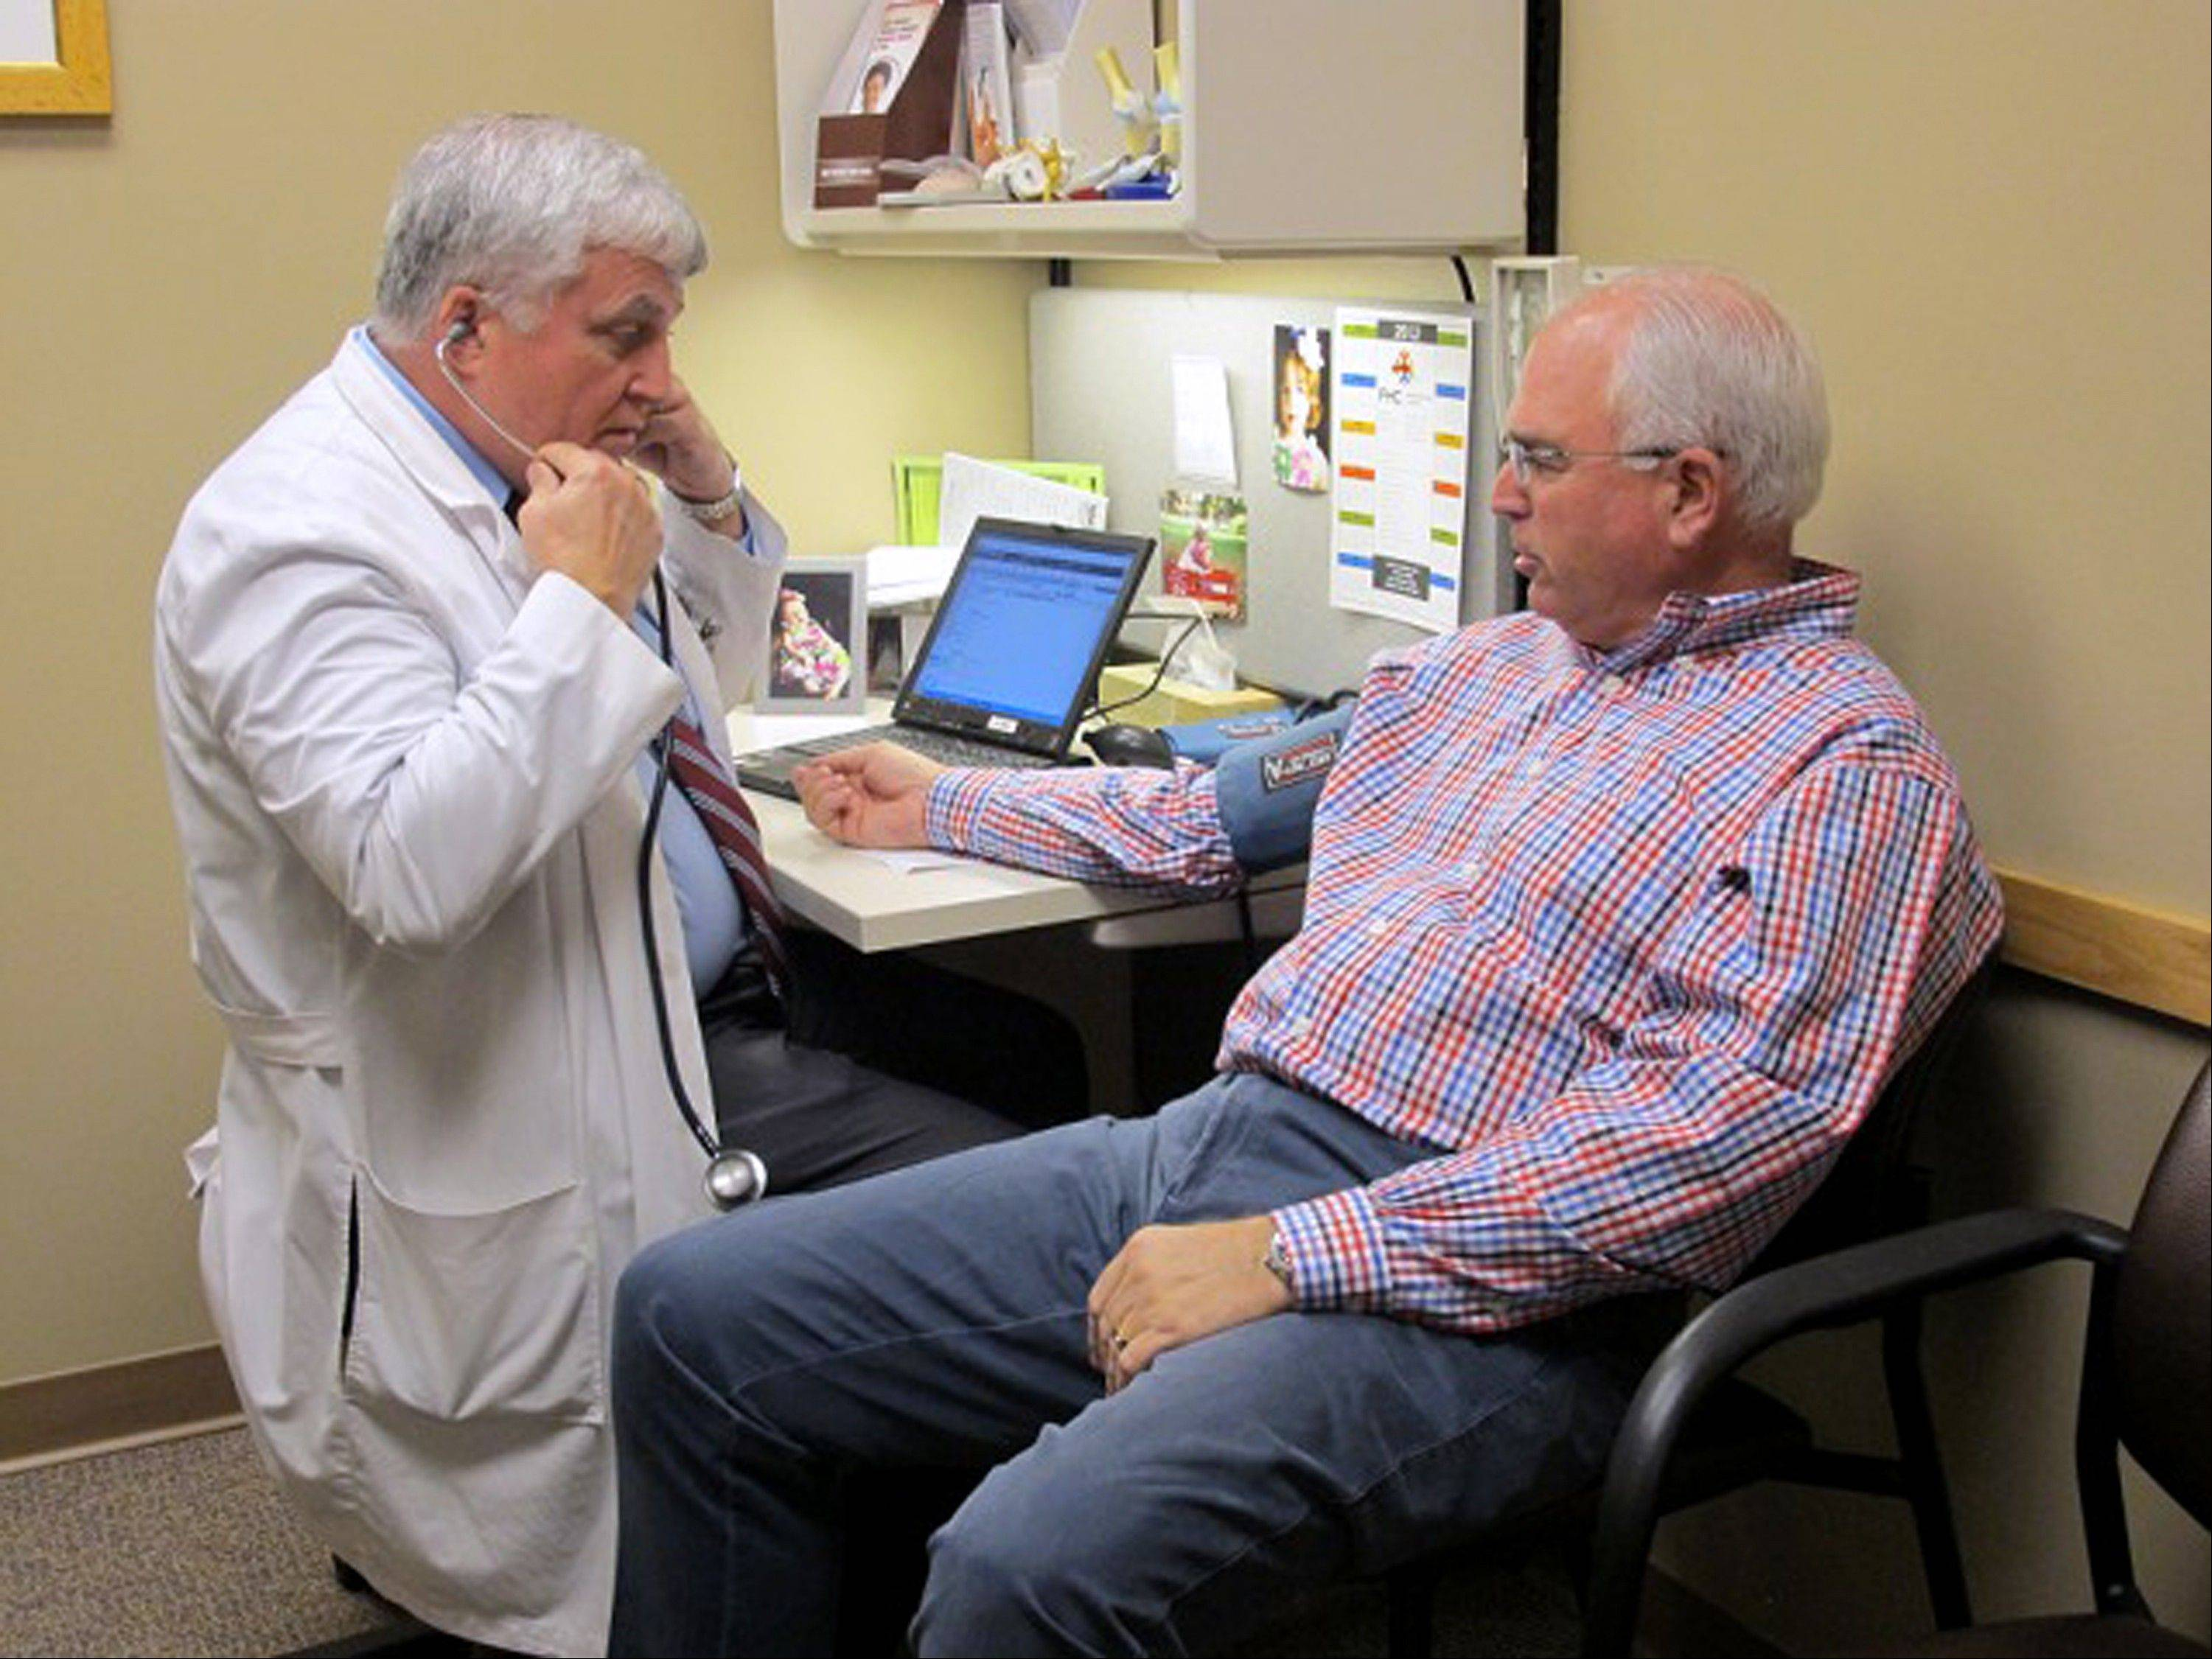 "Dr. Glen Stream prepares to examine patient Pete Forsyth in Spokane, Wash., on June 11. Health care spending has eased up recently, a welcome respite for government and corporate budgets. ""Far and away it is related to economic issues,"" Stream said. ""I see people who have medical conditions who I should be seeing every three months. They tell me they can only afford to come in every six months or once a year."""